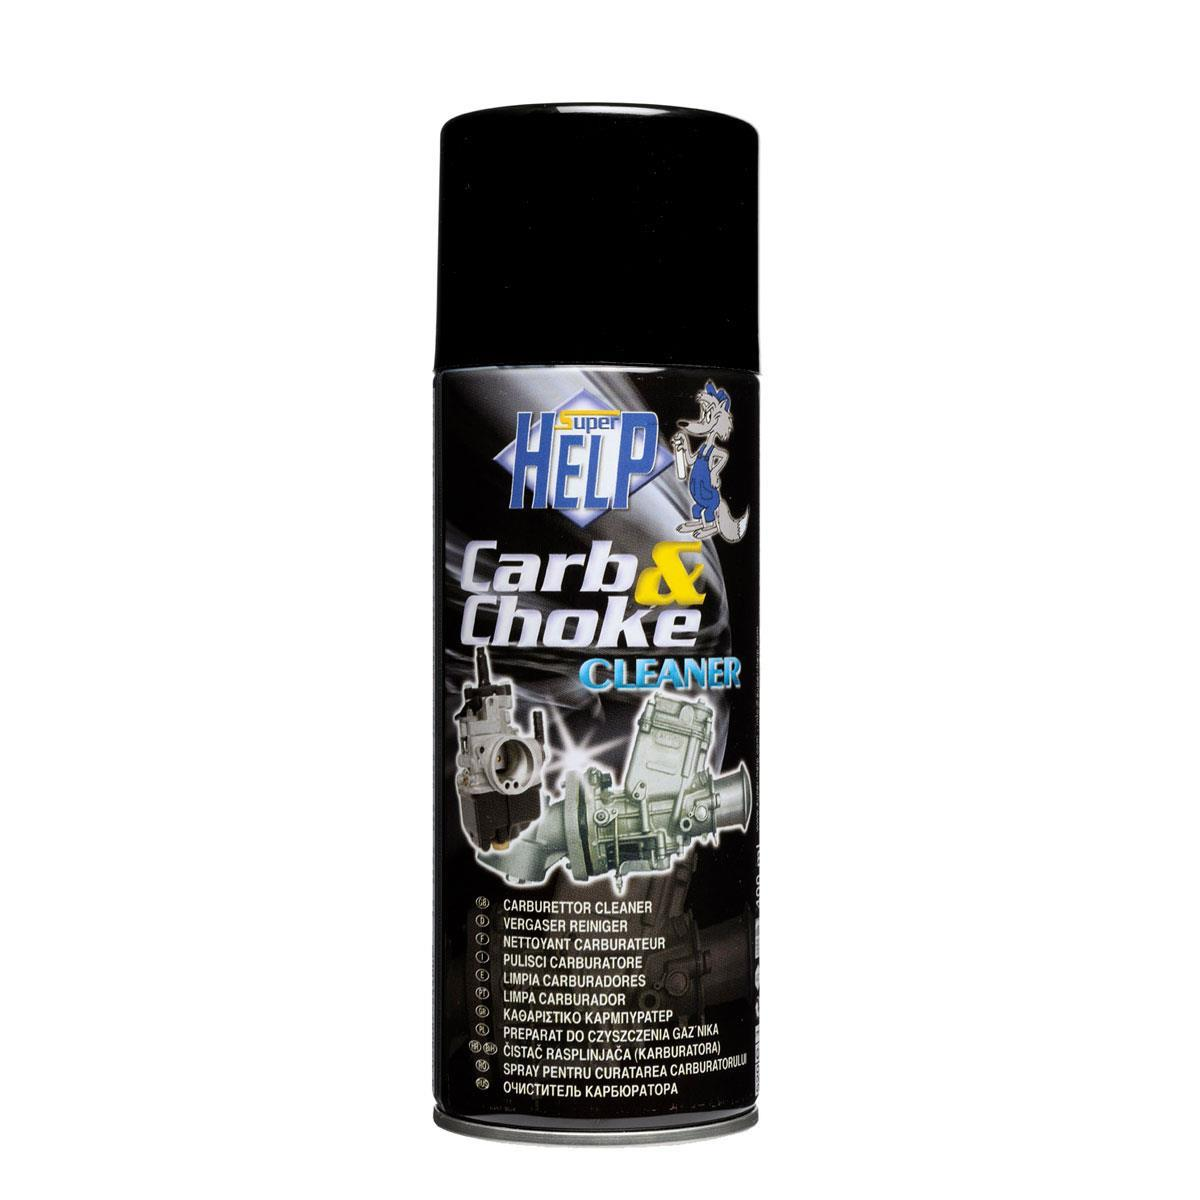 CARB & CHOKE CLEANER 0 Super Help